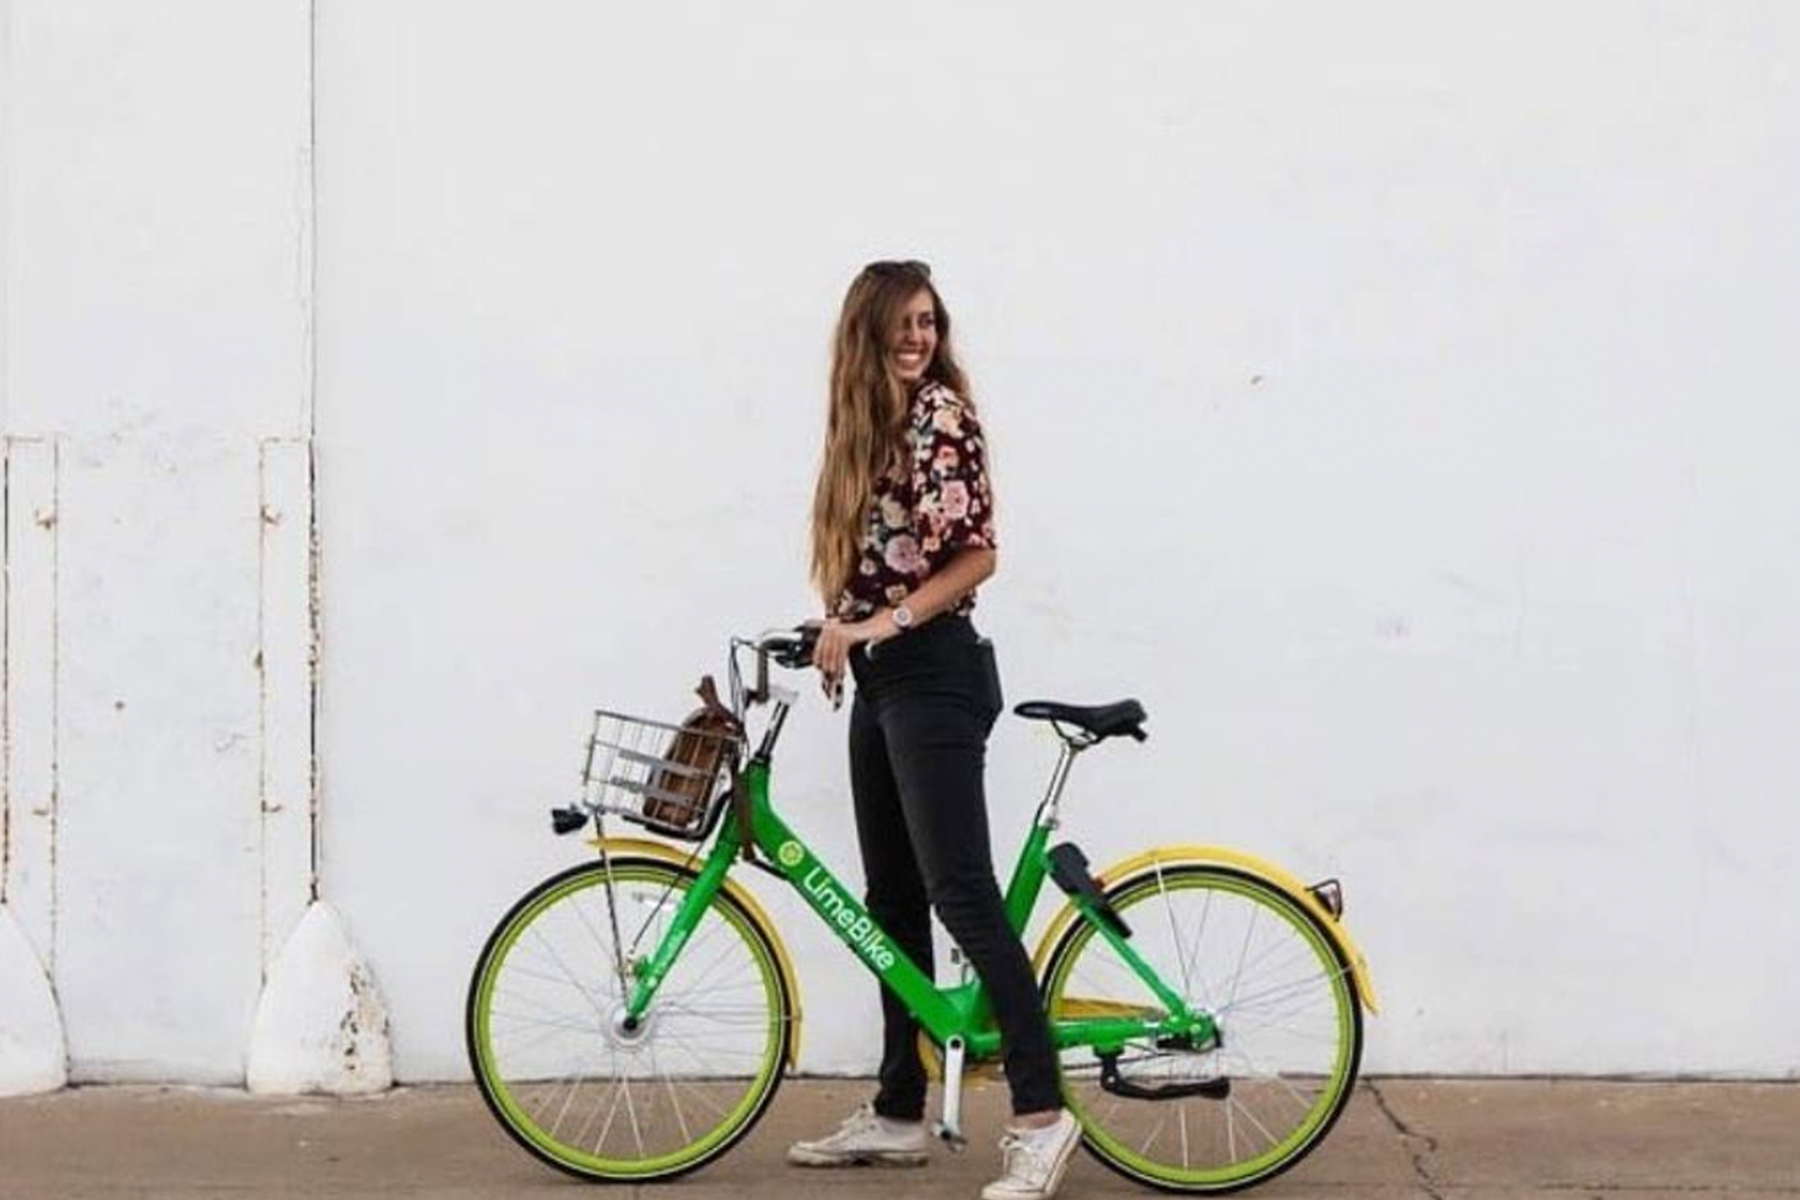 UX Consultant LimeBike - Seattle, WAJuly 2017 - December 2017